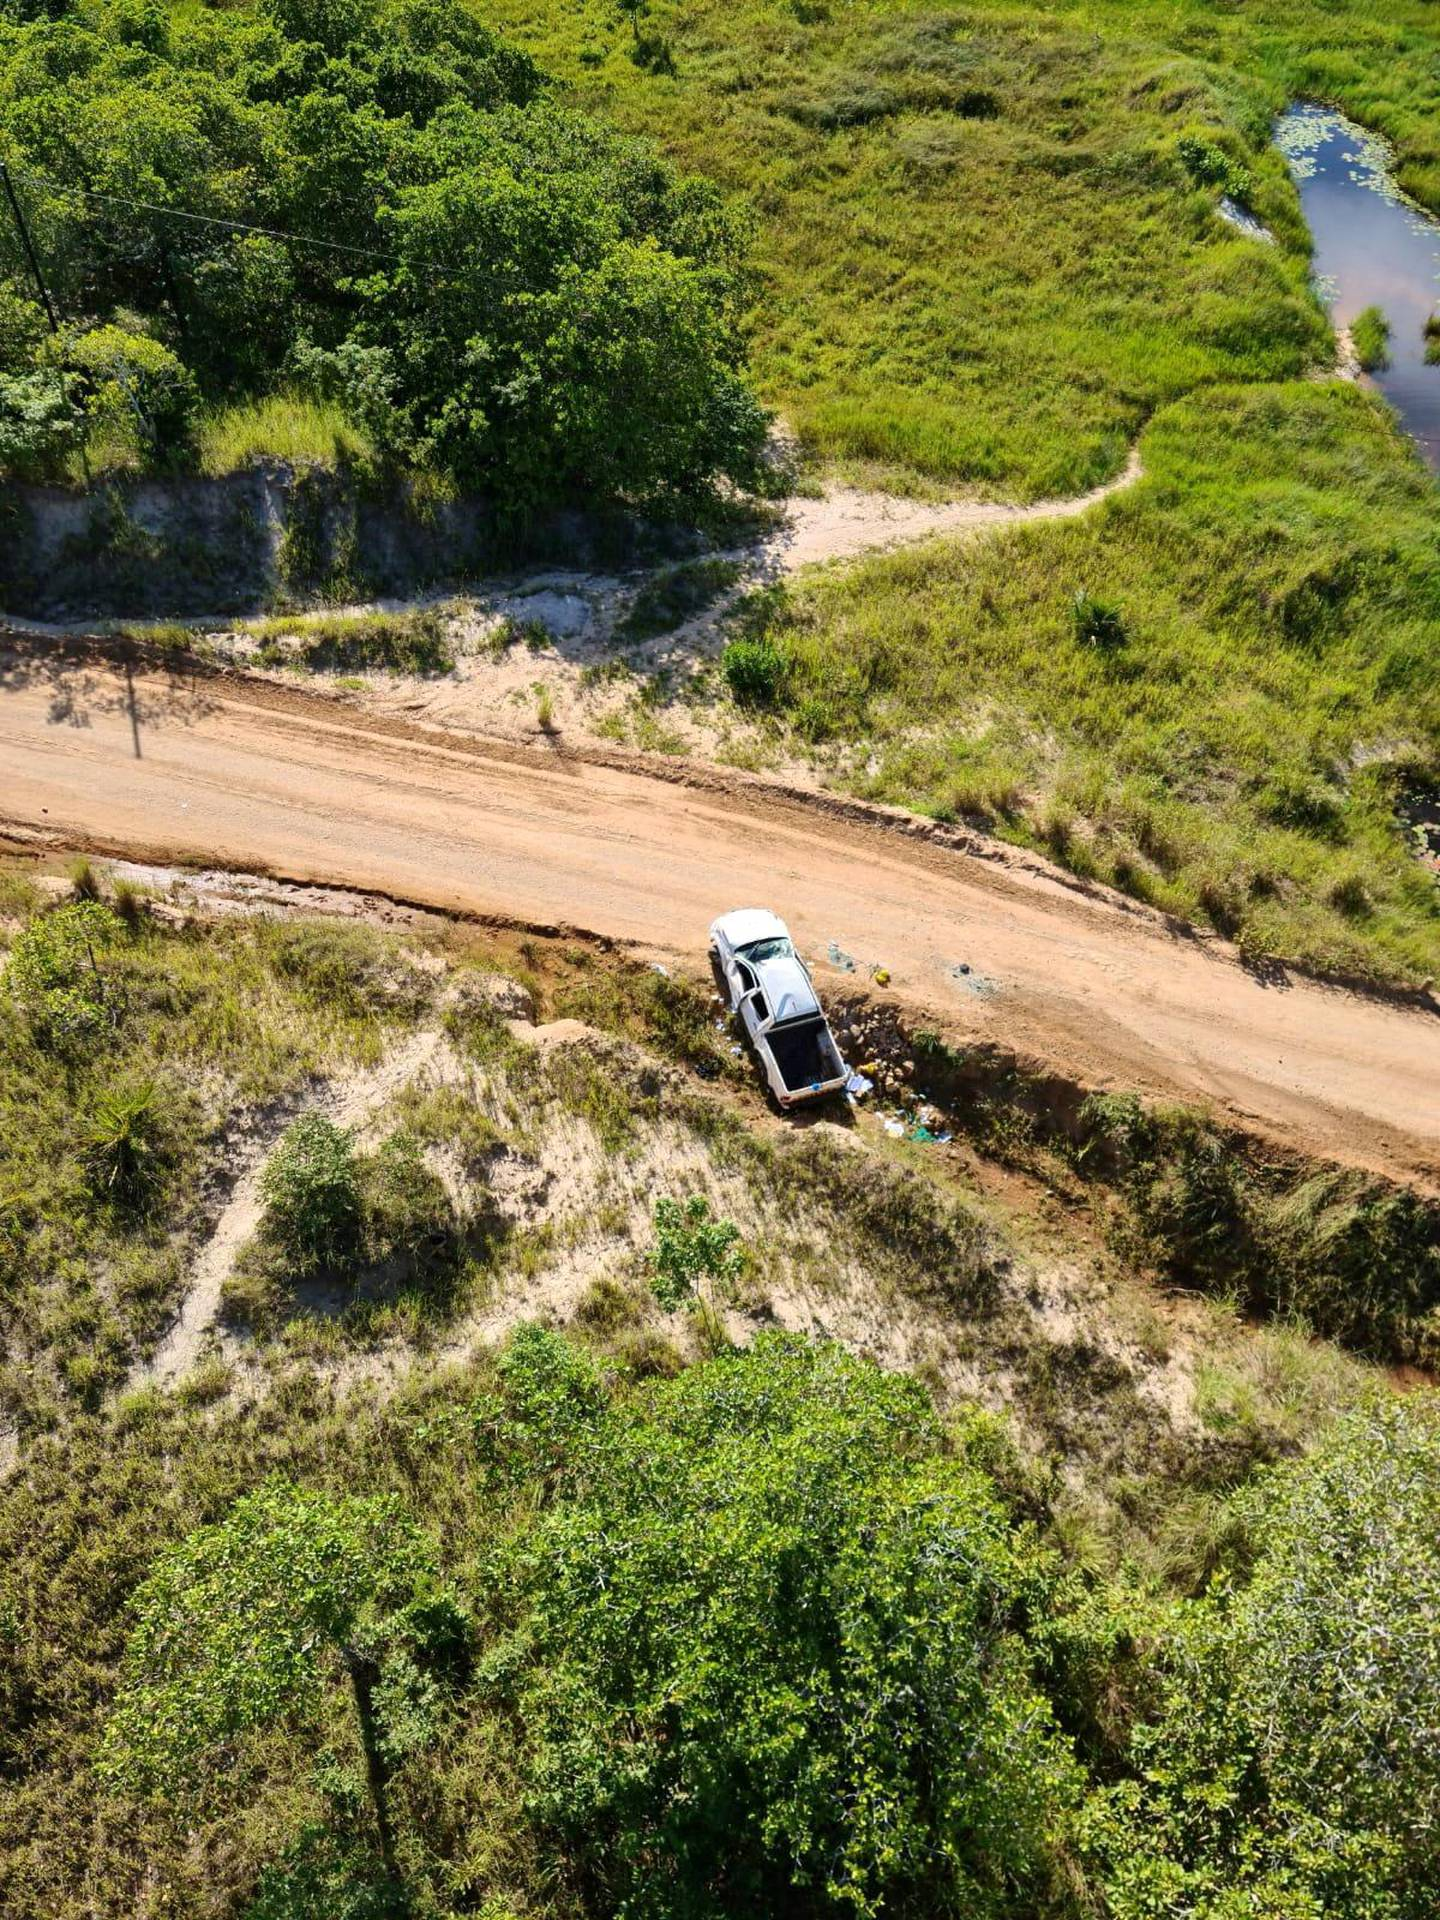 A car involved in an ambush on a convoy of vehicles carrying civilians who had been sheltering in a hotel in Palma, lies wrecked on the side of the road, in Mozambique, in this picture taken between March 24 and March 27, 2021 and obtained by Reuters on March 30, 2021. Dyck Advisory Group/Handout via REUTERS THIS IMAGE HAS BEEN SUPPLIED BY A THIRD PARTY. MANDATORY CREDIT.